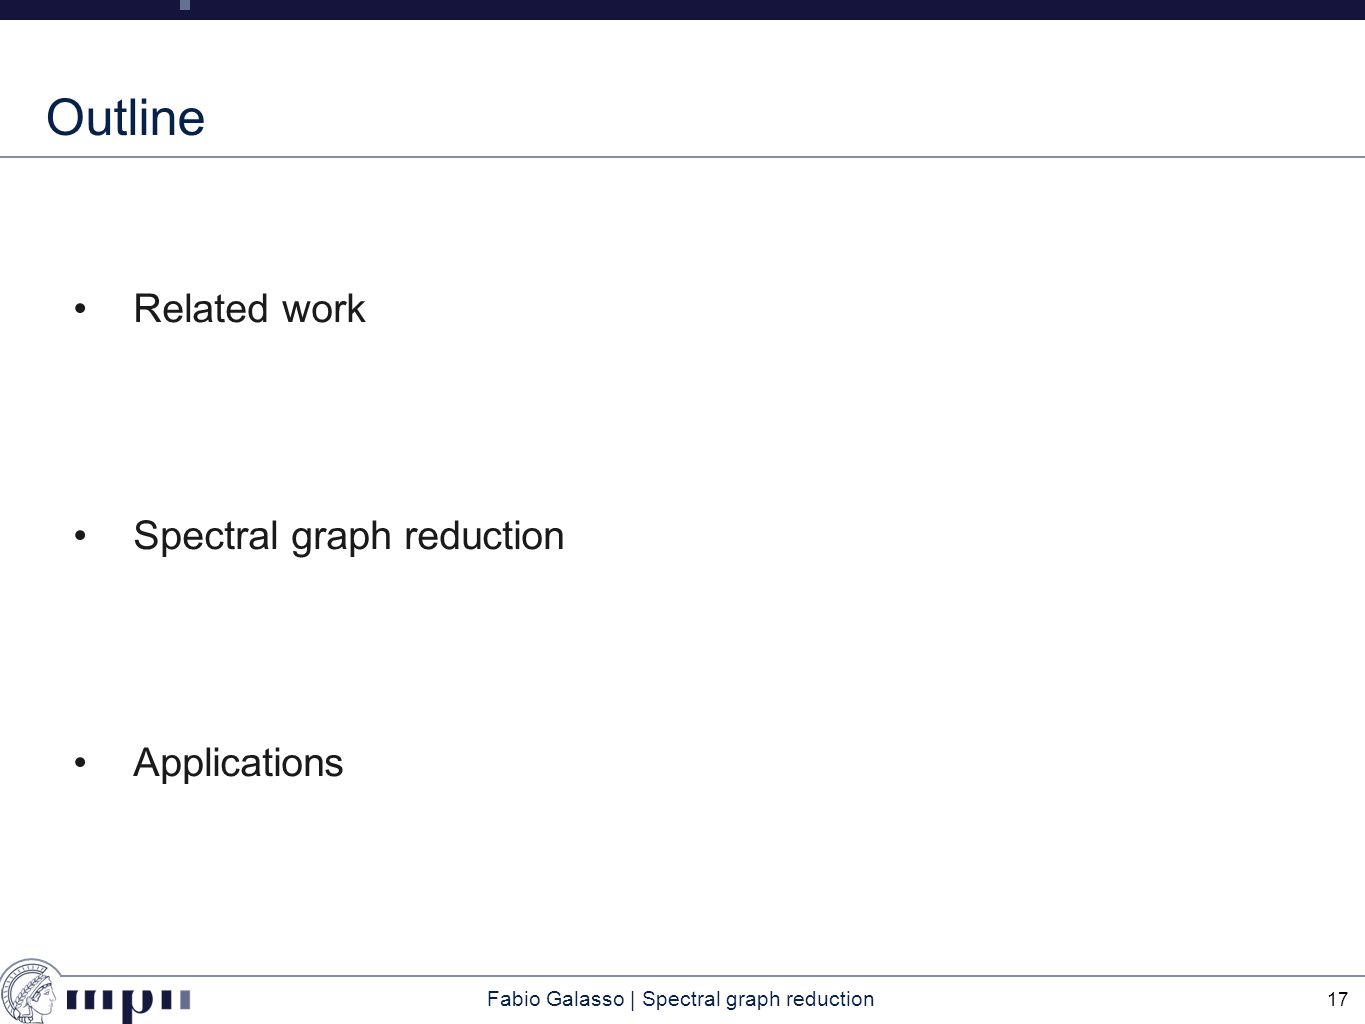 Fabio Galasso | Spectral graph reduction Outline Related work Spectral graph reduction Applications 17